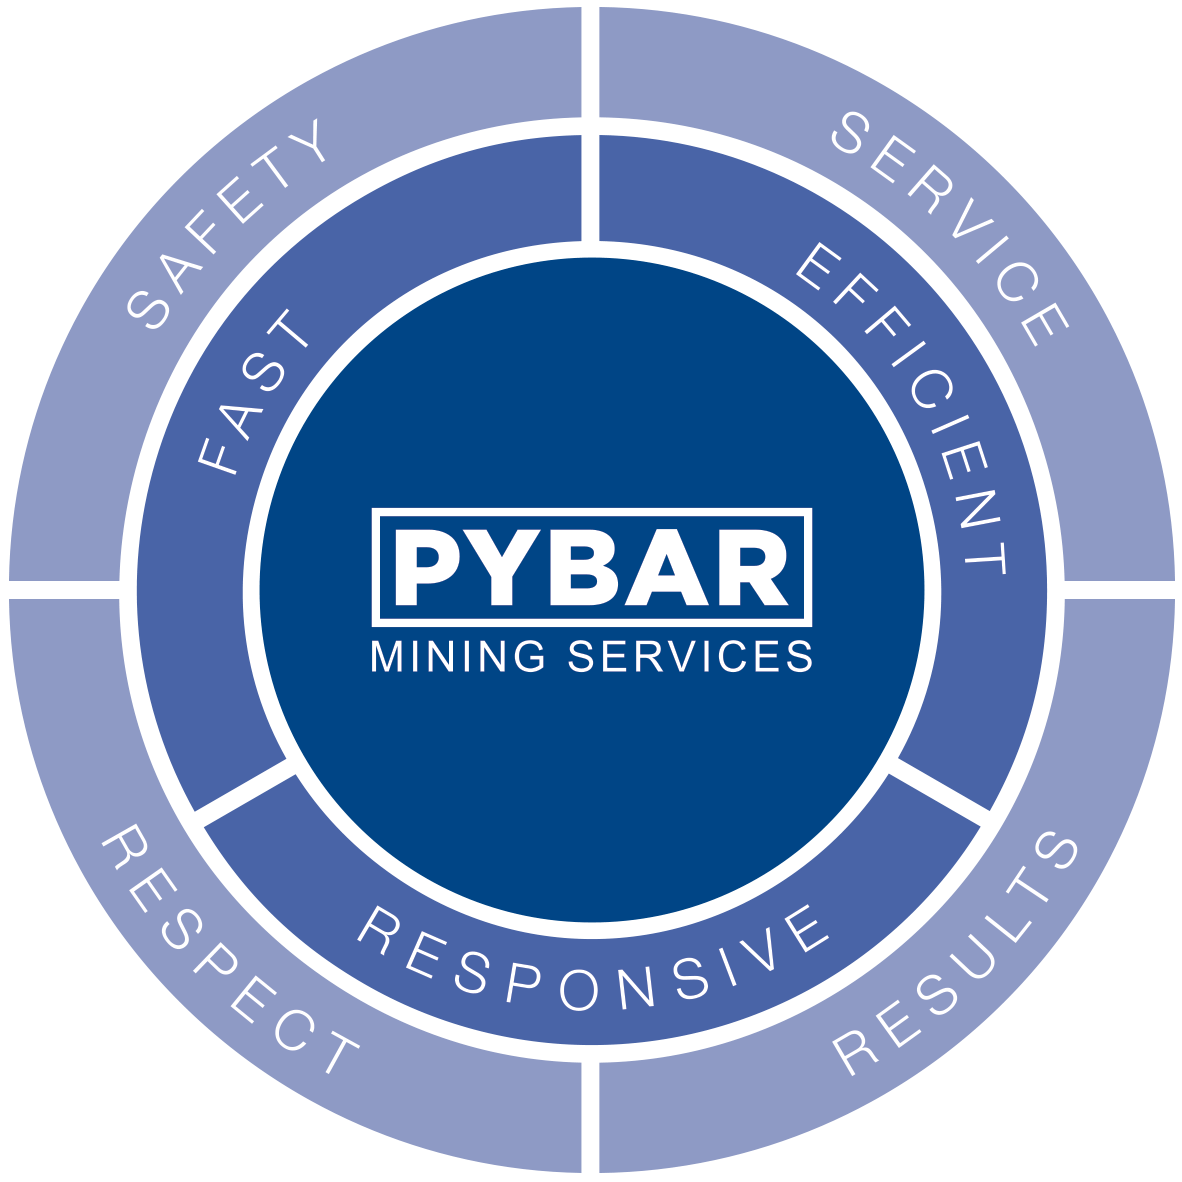 PYBAR Values Wheel